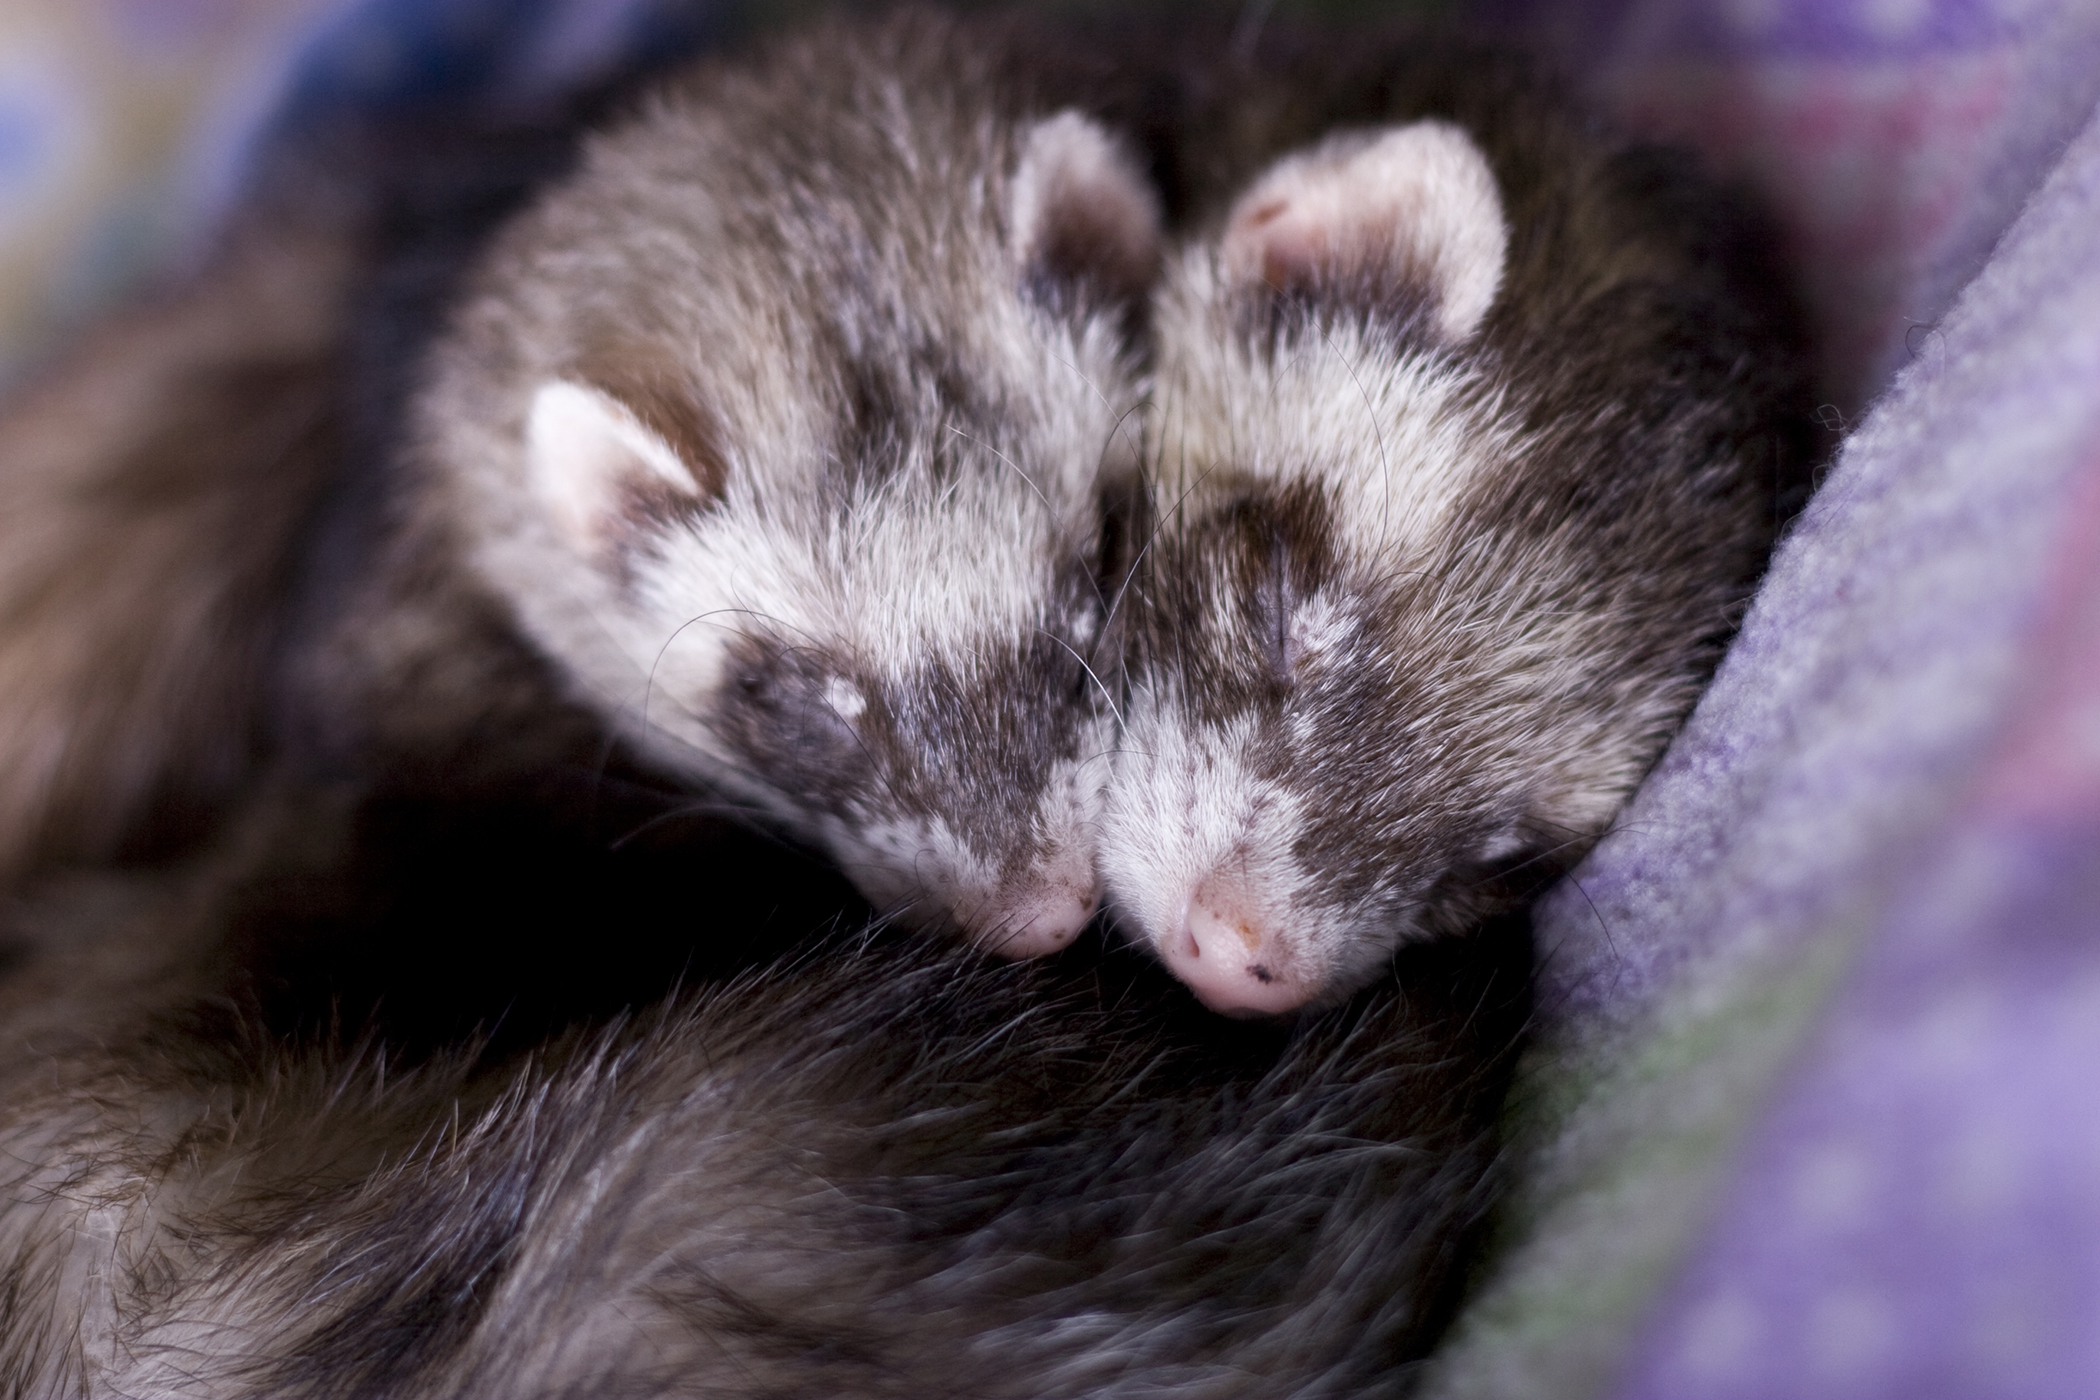 Cutaneous Mast Cell Tumors in Ferrets